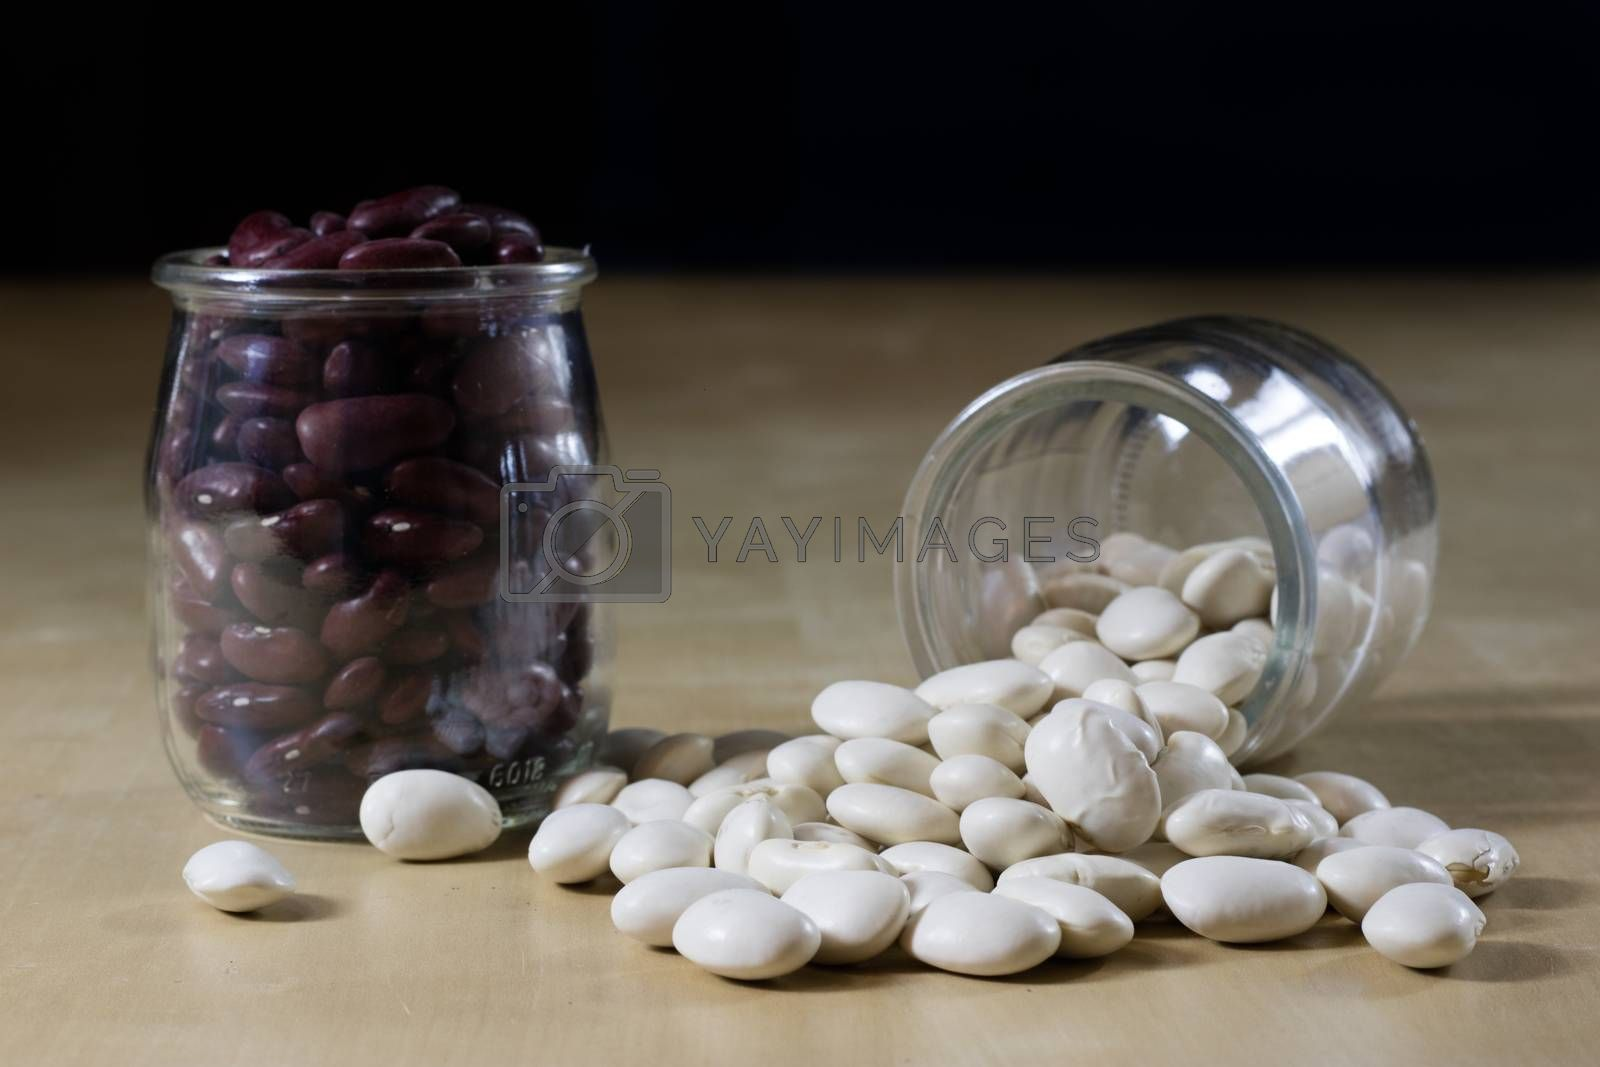 Delicious bean in a glass jar on a wooden kitchen table. Black background.